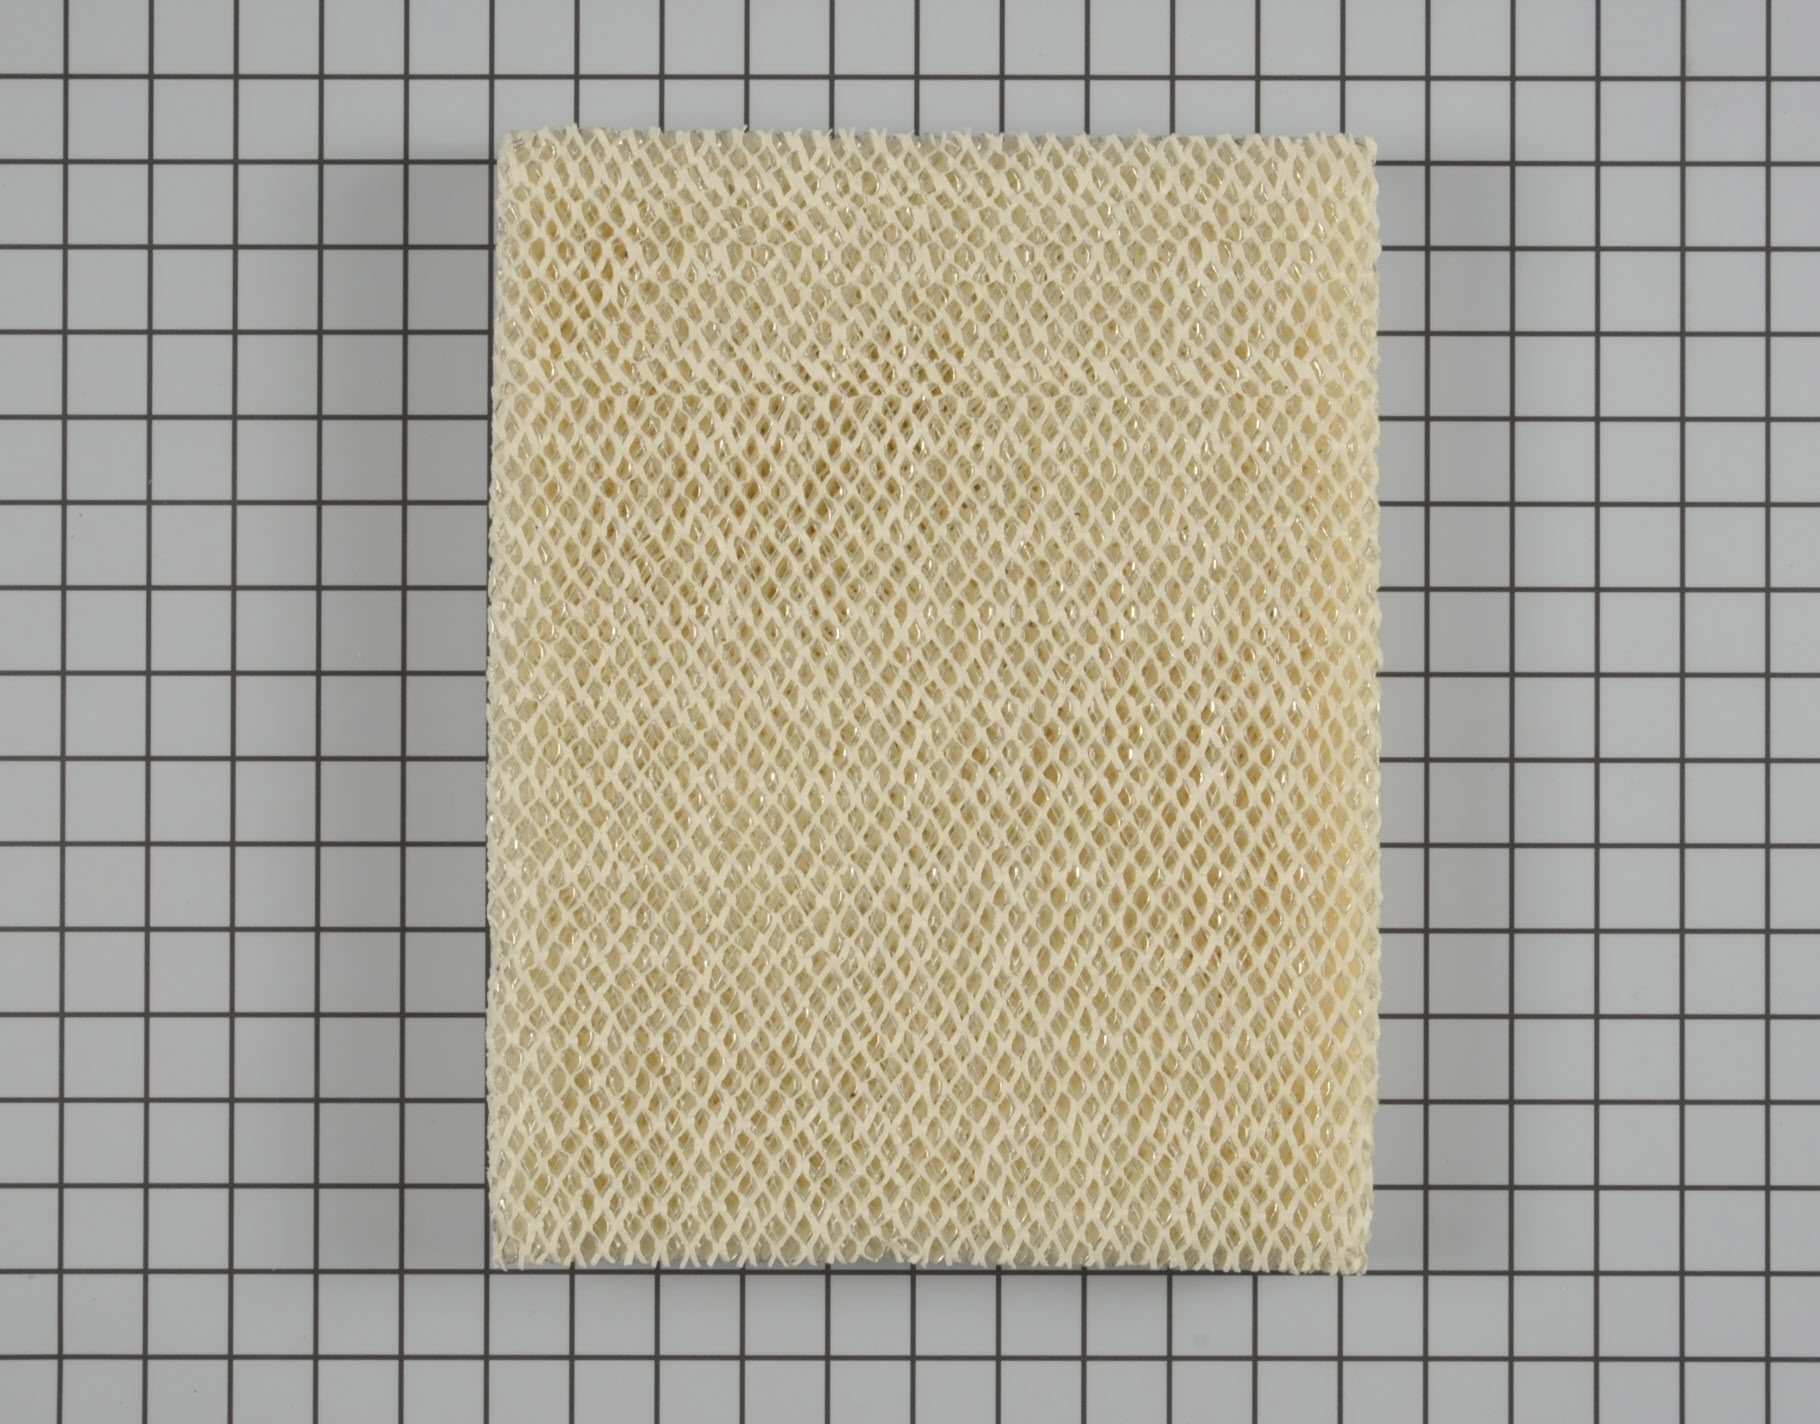 45 Aprilaire Humidifier Part -Water Evaporator Pad